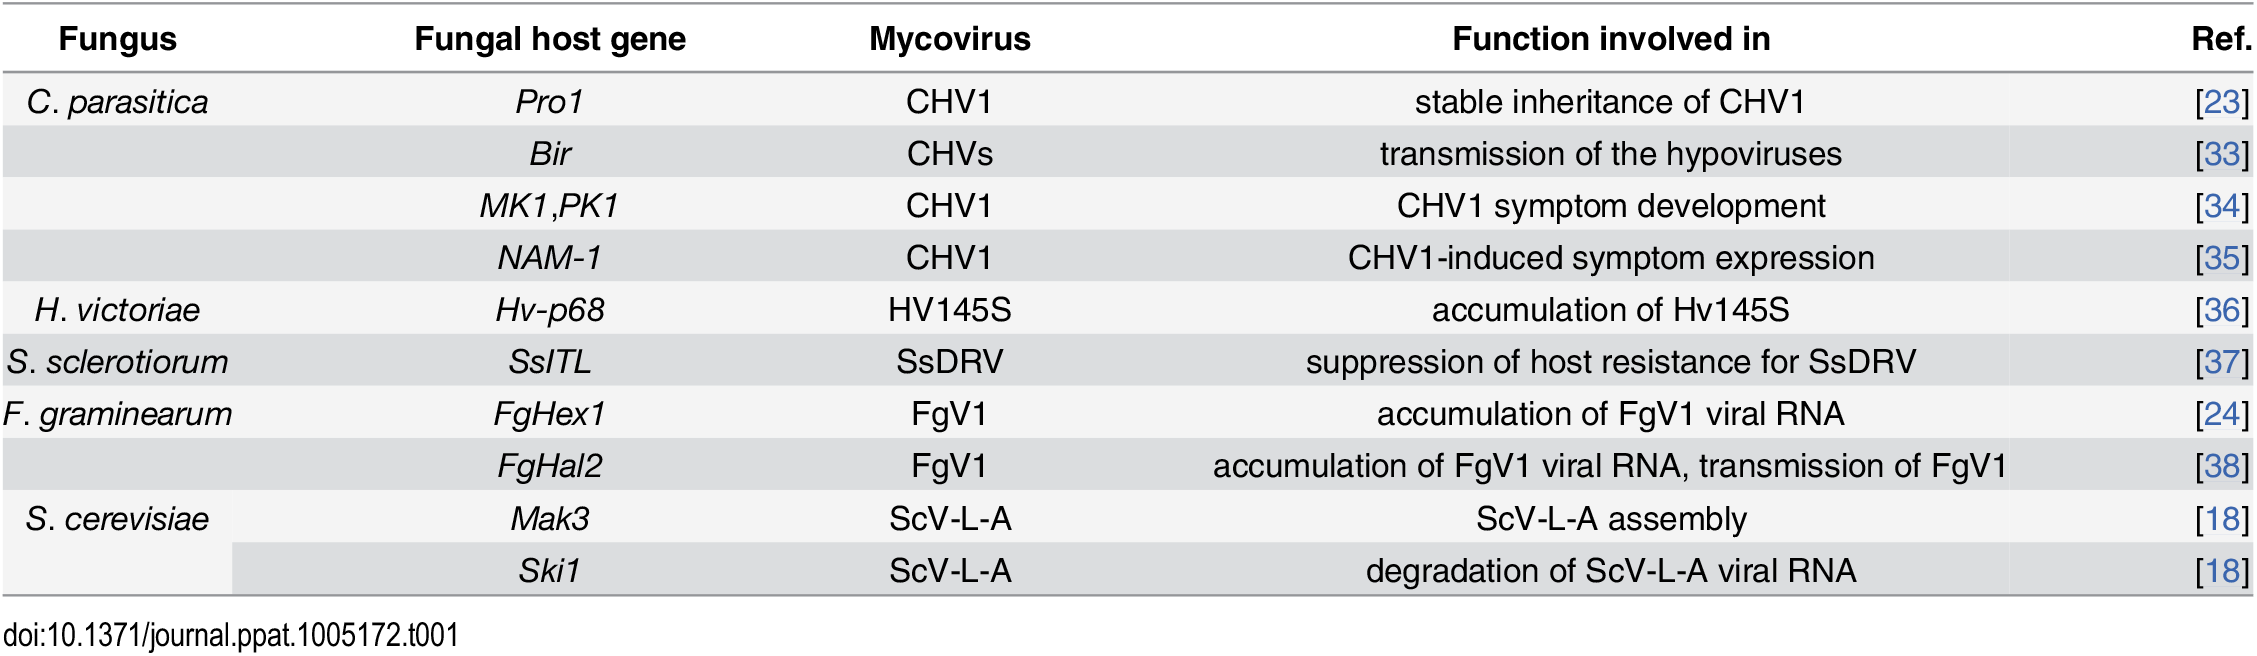 Host genes involved in interactions between mycoviruses and host fungi.